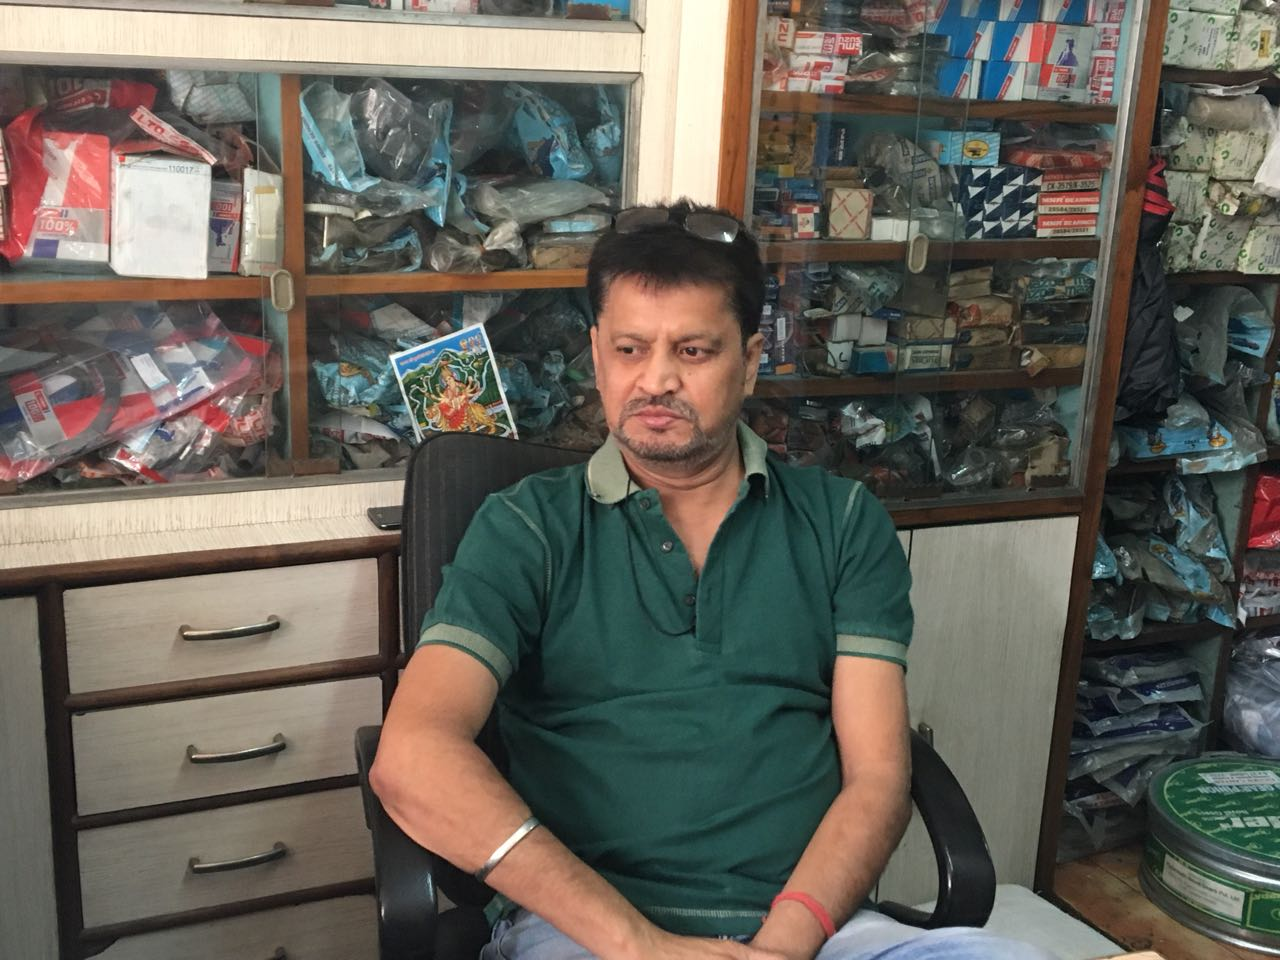 RK Chawla of Sneh Traders Pvt Ltd said his company's annual turnover was earlier Rs 15 crores but he would be happy with Rs 2 crores this year.